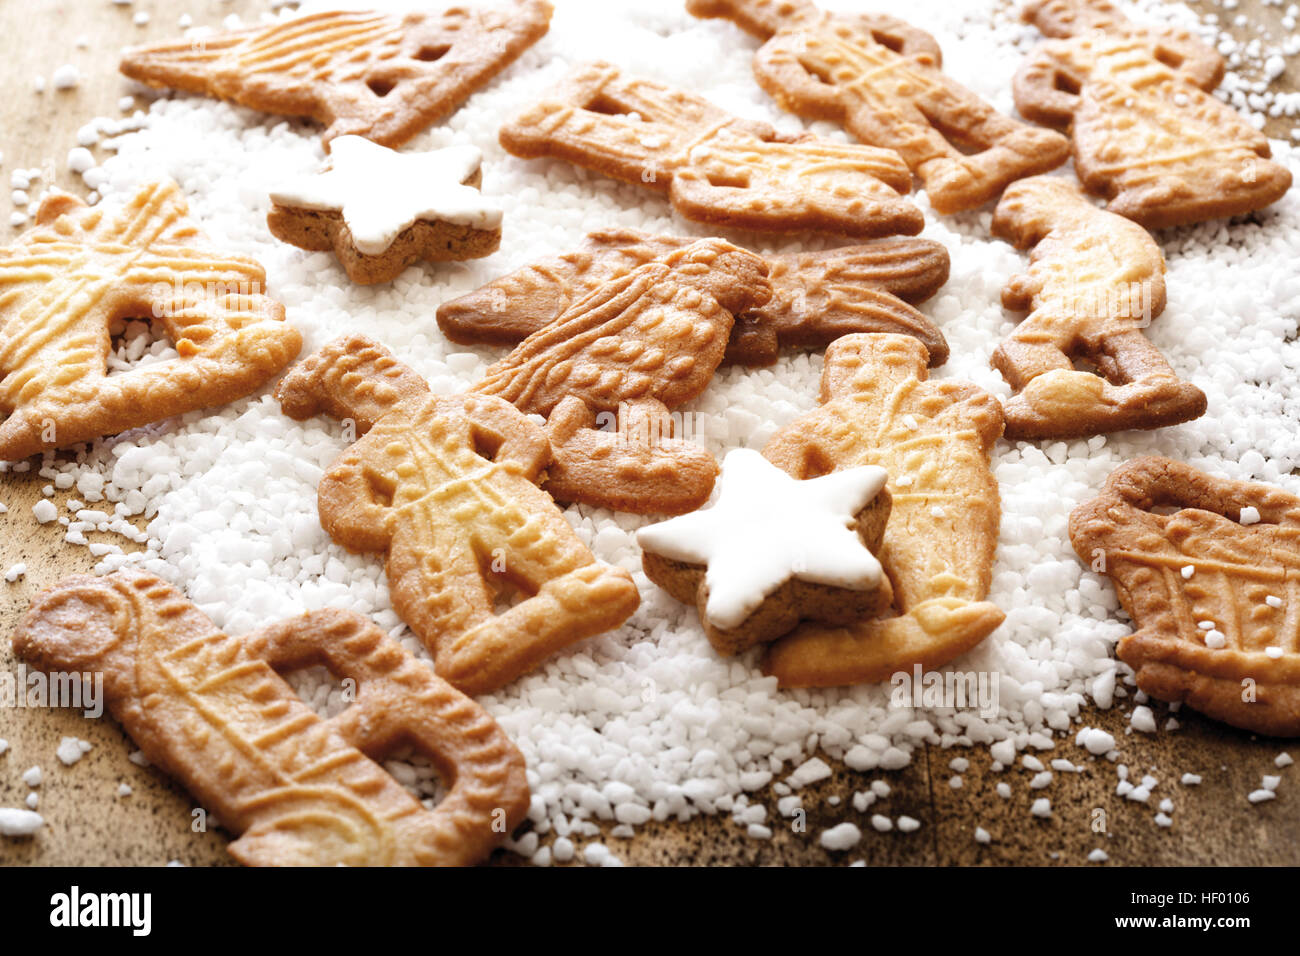 Assorted Speculaas Biscuits Dutch Cookies With Coarse Sugar And